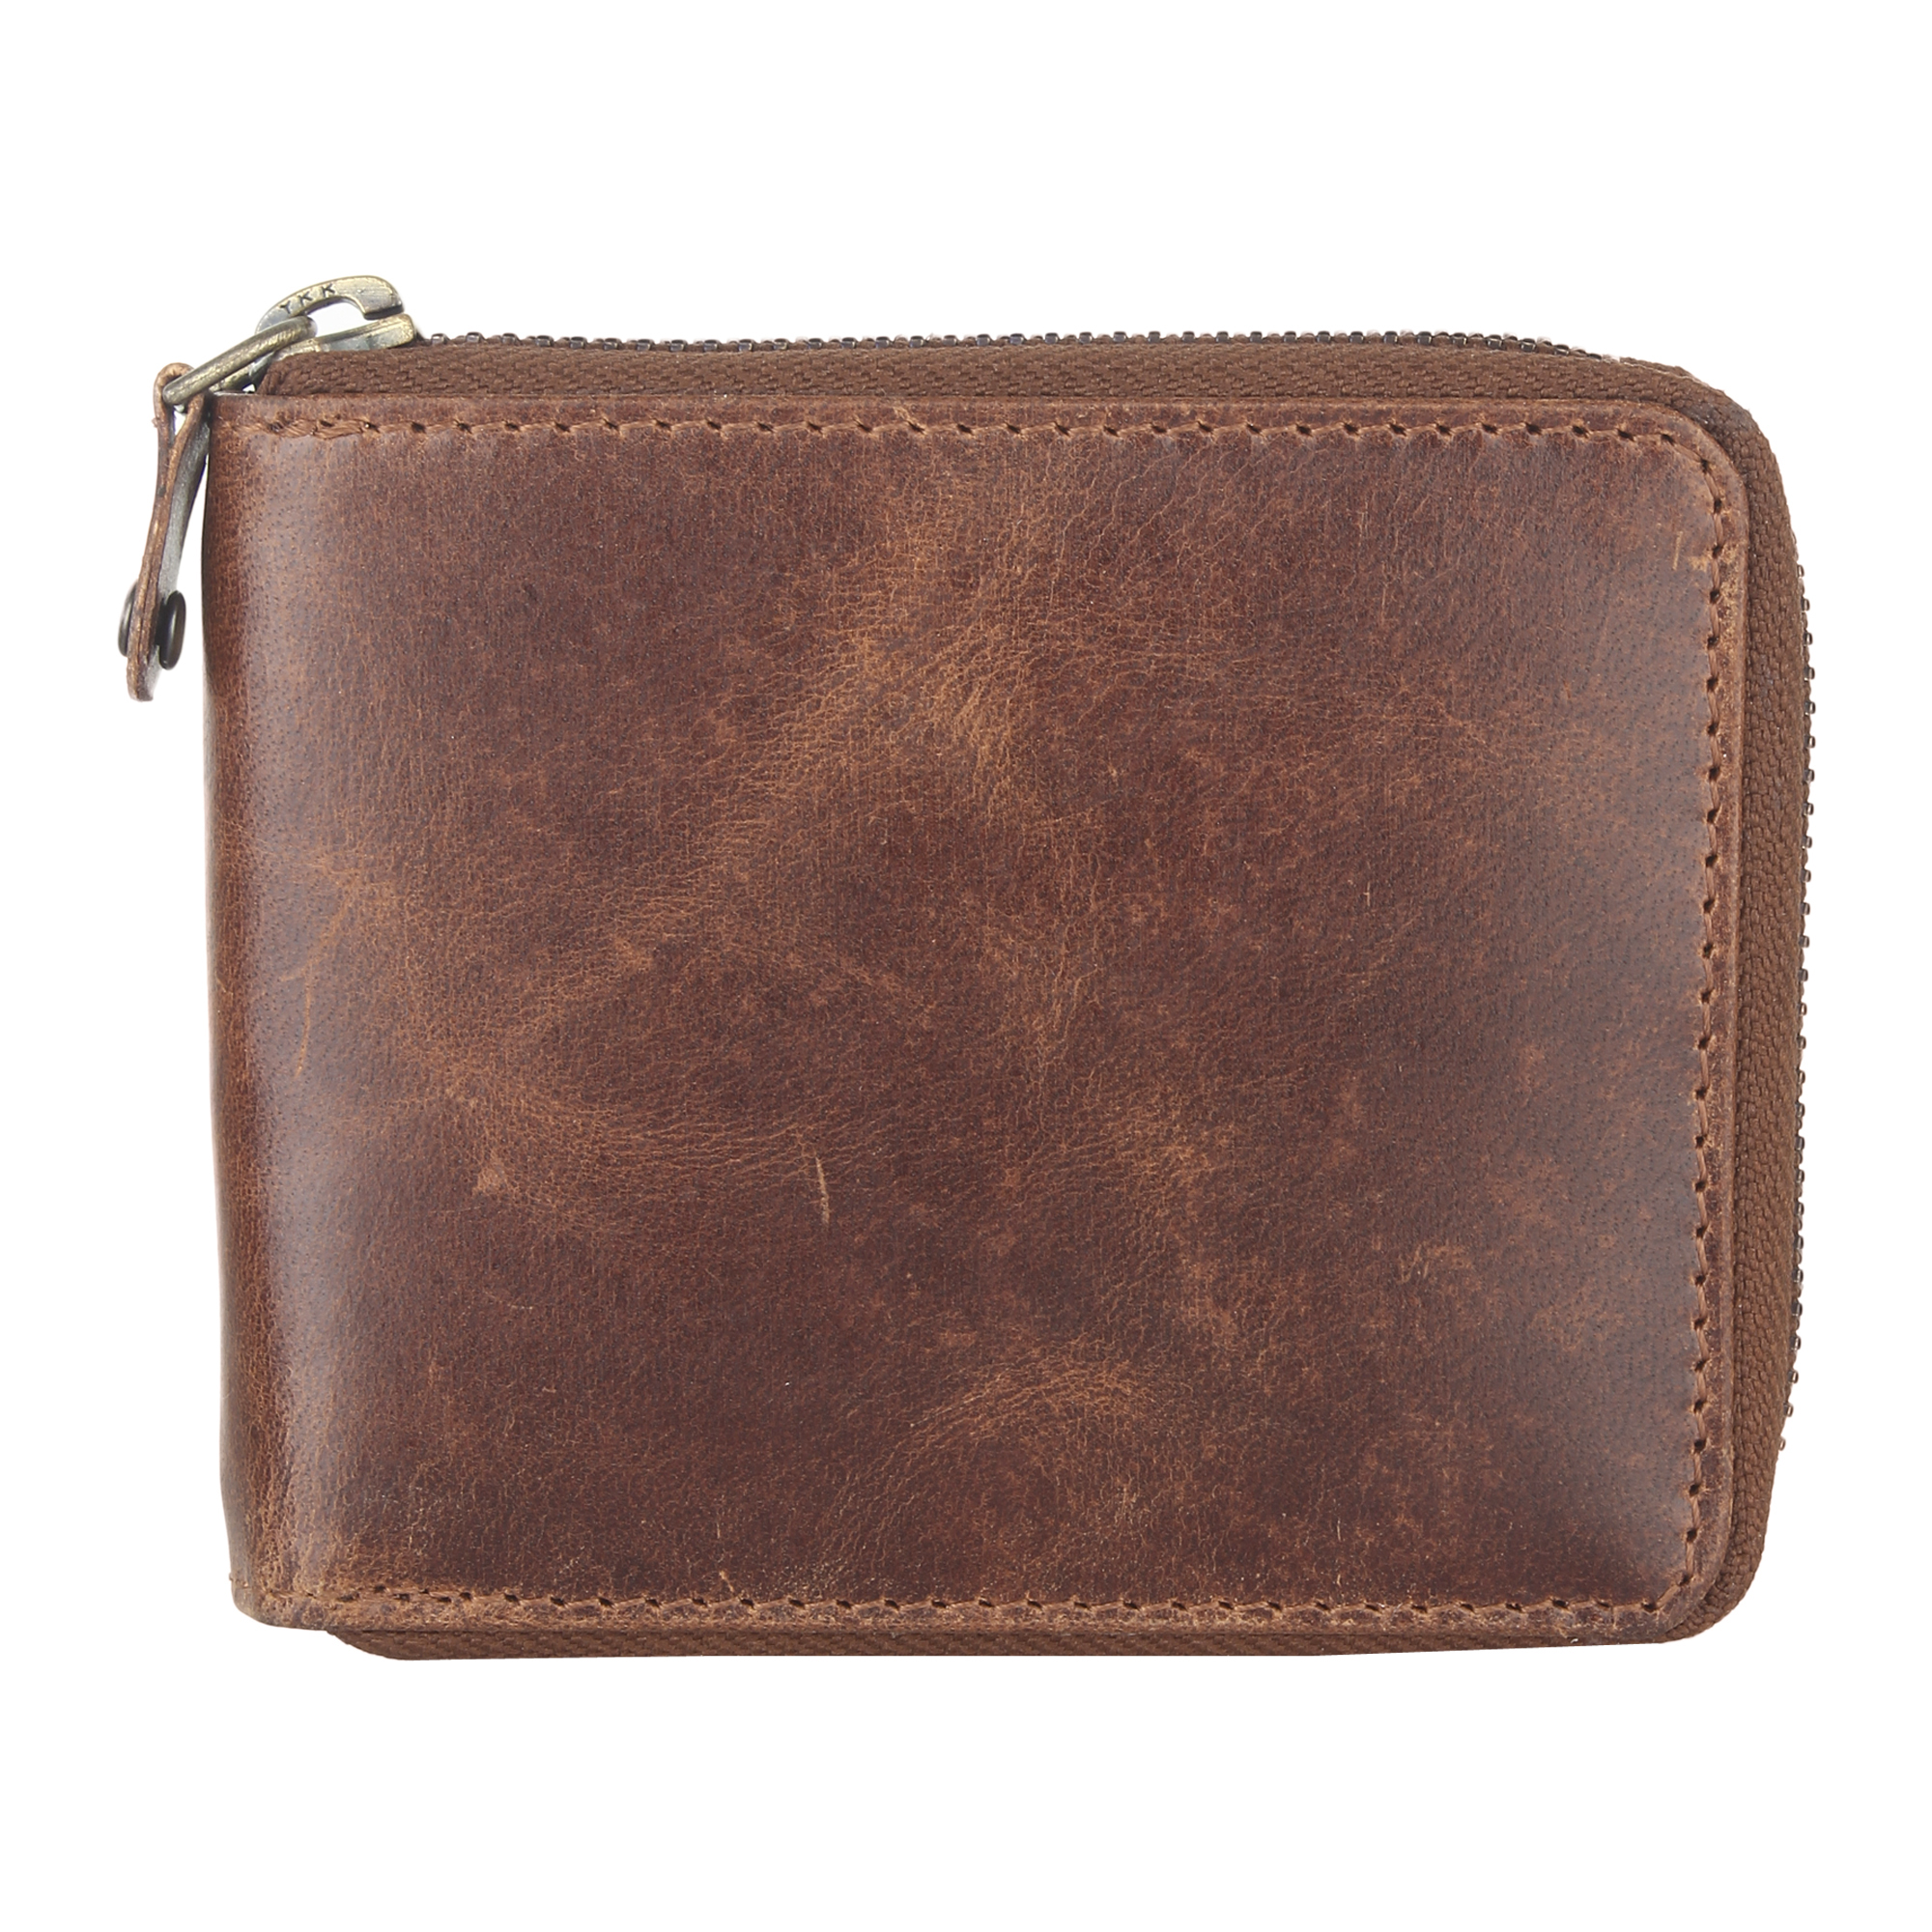 Leather Wallets Manufacturers in Dubai, Leather Wallets Suppliers in Dubai, Leather Wallets Wholesalers in Dubai, Leather Wallets Traders in Dubai, custom leather wallet manufacturers in Dubai, Leathe